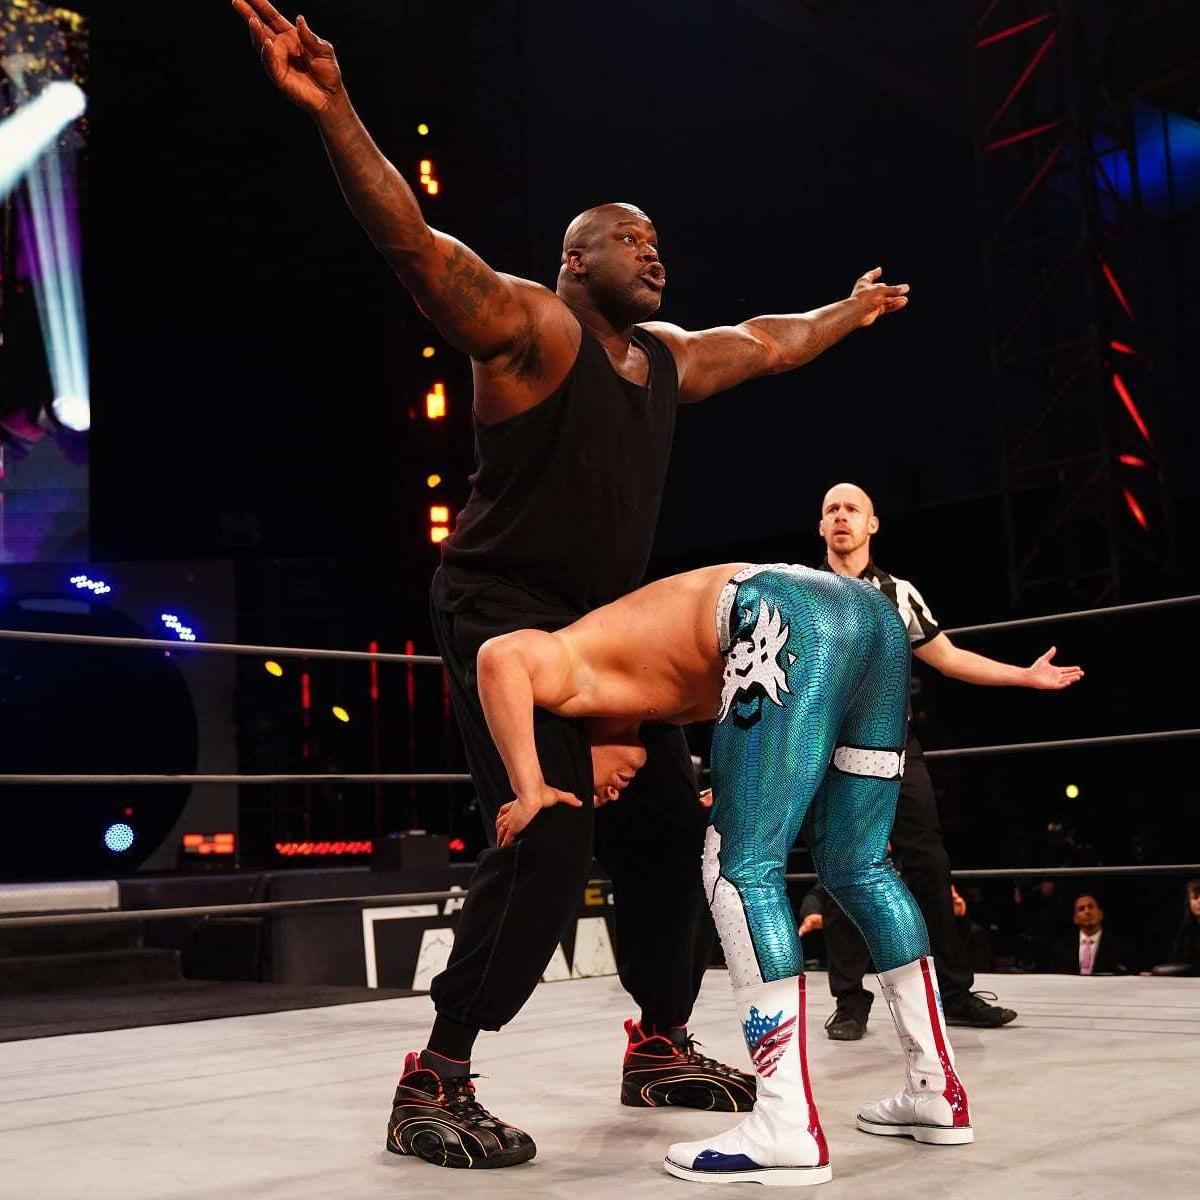 Quick Takes: Shaq's Debut, Lashley as WWE Champ, AEW's Next Big Signing and More